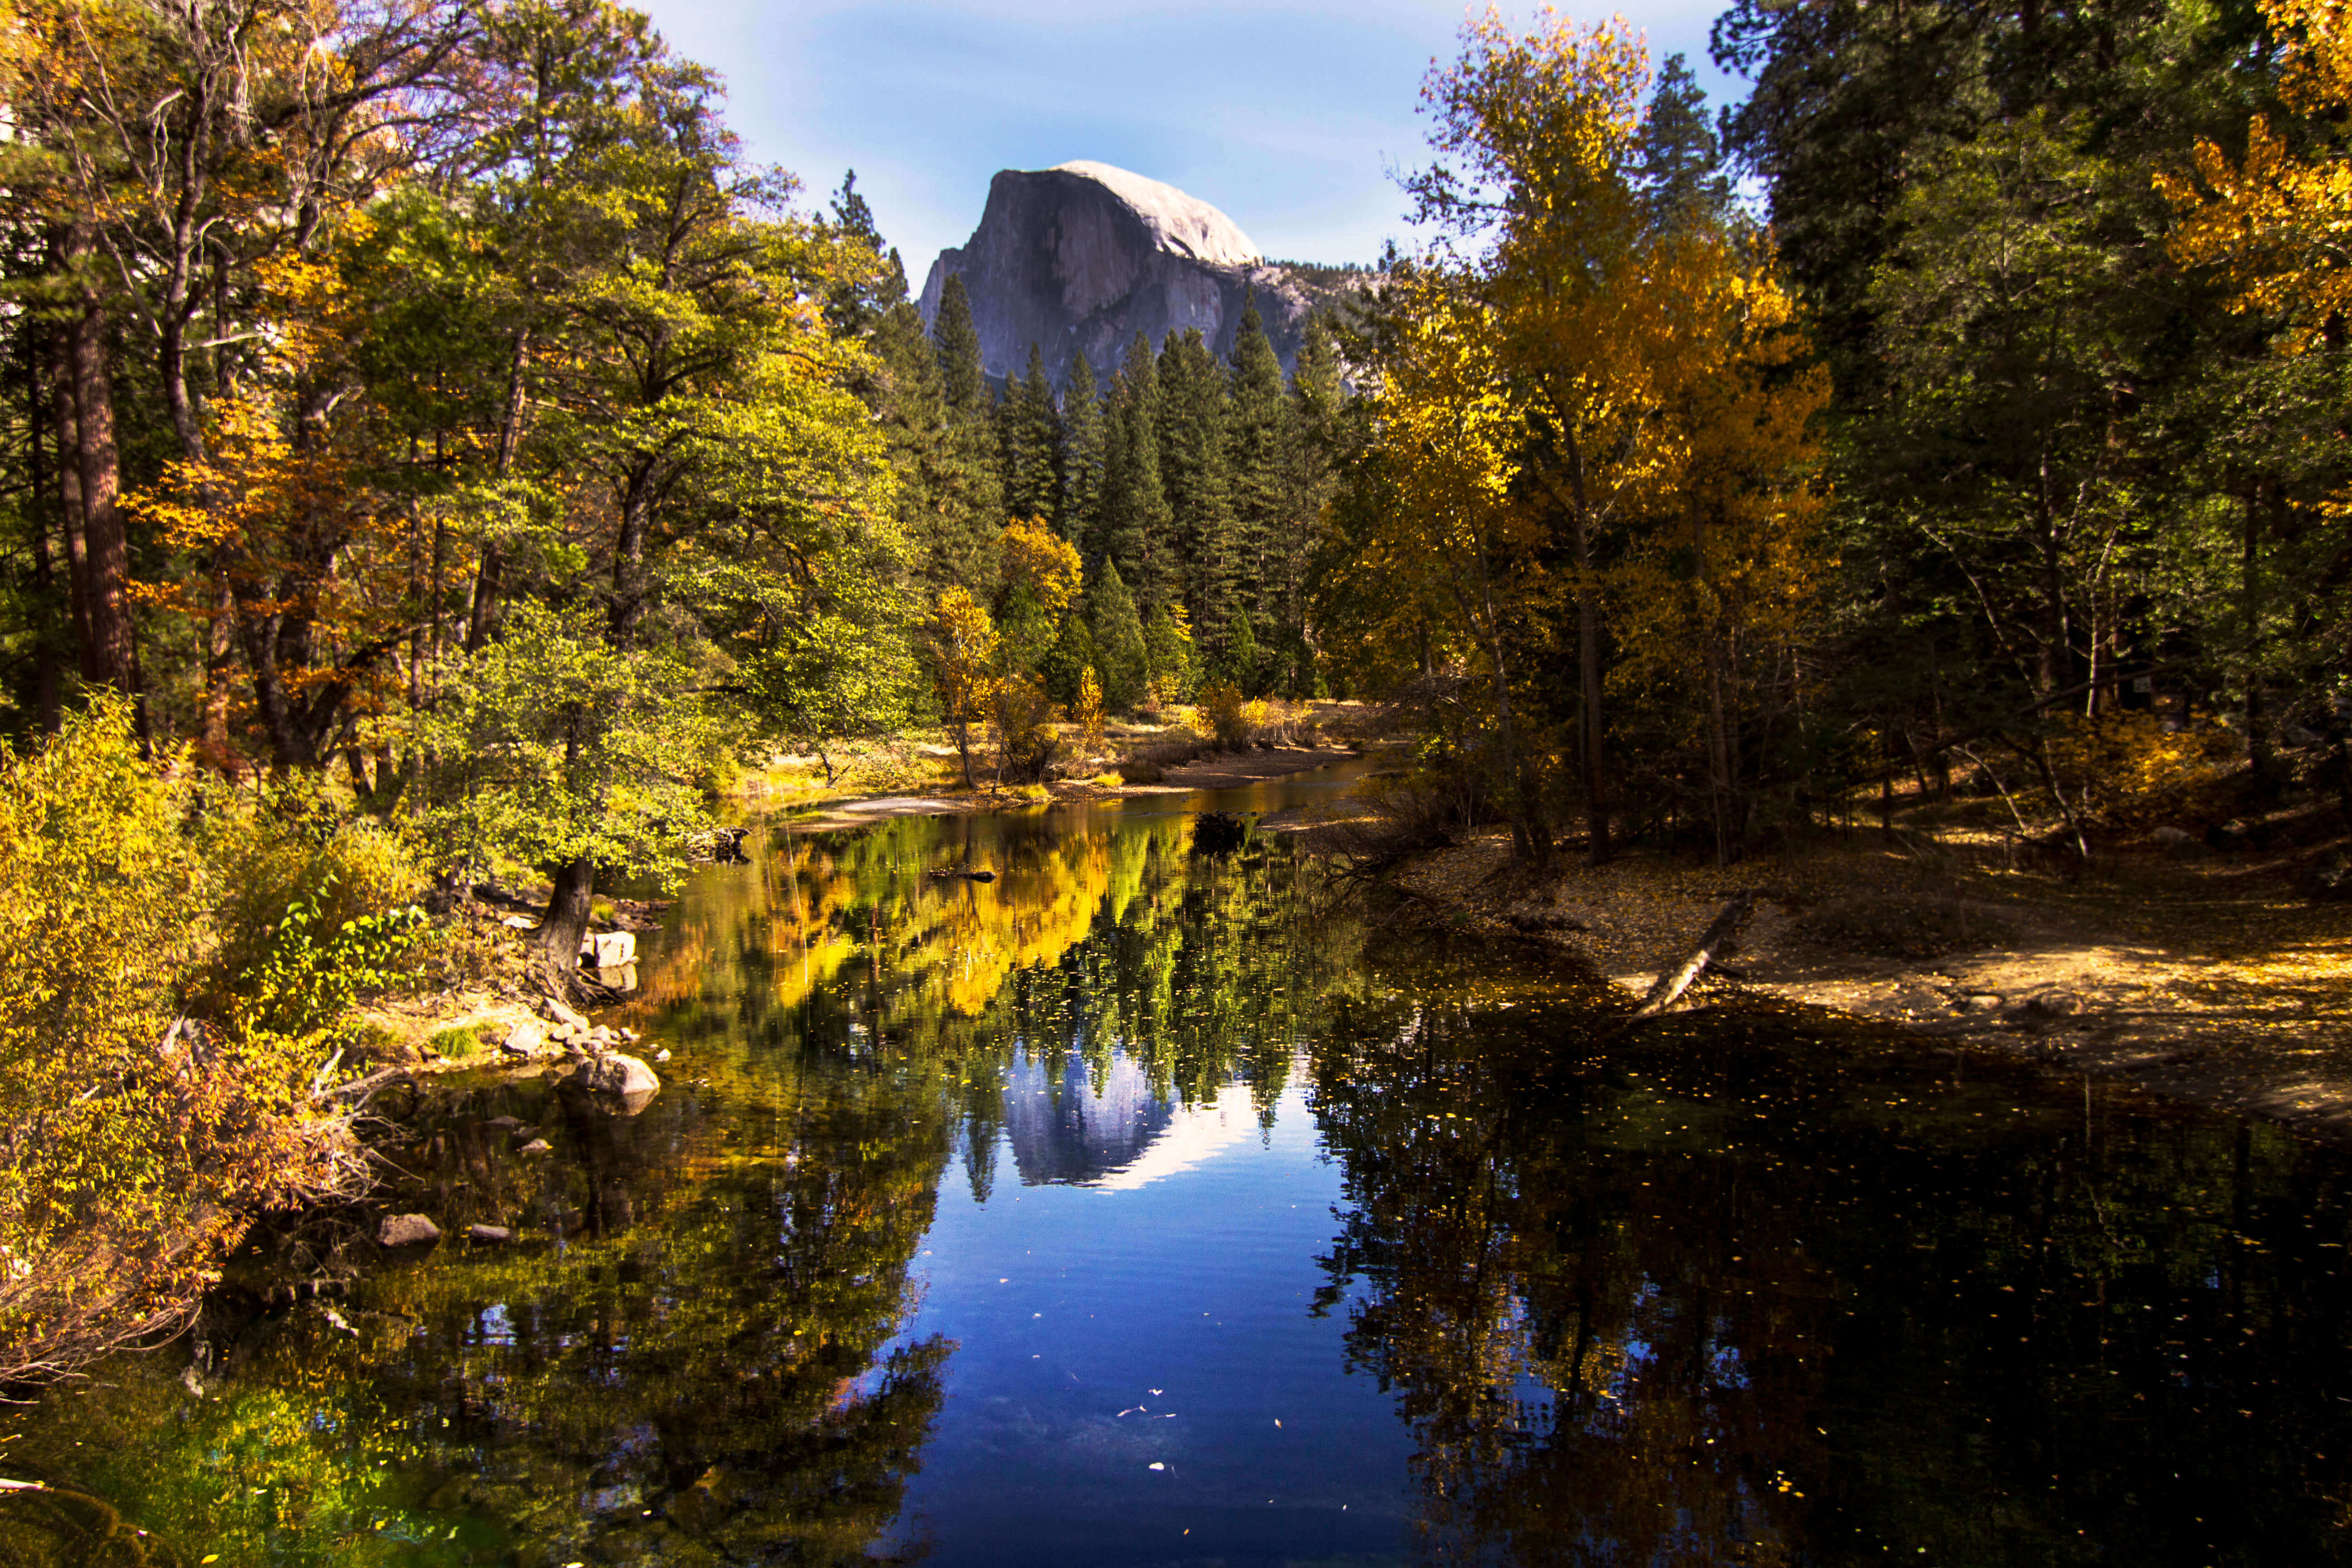 Leaf Peeping Through Instagram Posts: Where to Get Photos of Fall Leaves in Yosemite